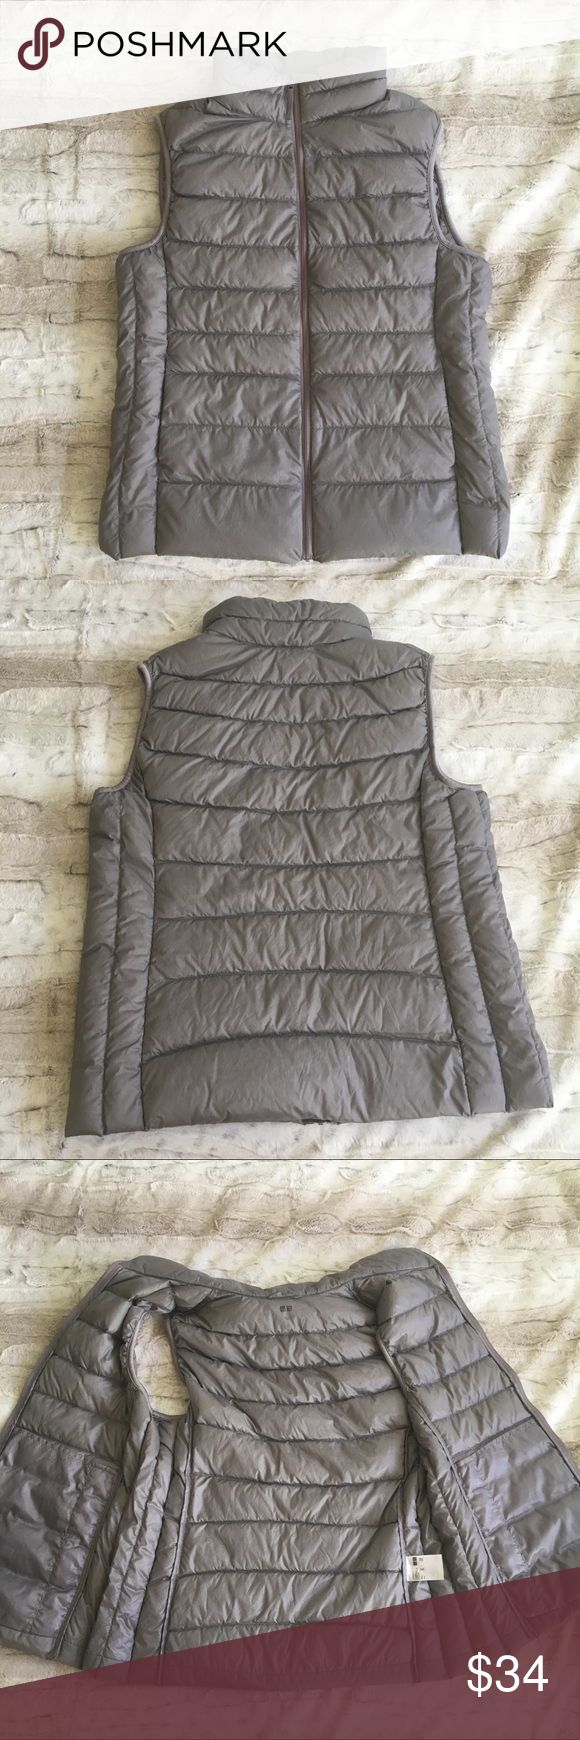 """Uniqlo Lightweight Vest Soft, lightweight, and versatile color. Down-blend filling. Great condition but does have some staining on the front. It's so unnoticeable and difficult to photograph. Approximate Measurements: 20"""" across the chest, 15"""" across the shoulders, and 25"""" long. Bundle to Save! 3+items=30% off! No trades or lowballs. Uniqlo Jackets & Coats Vests"""